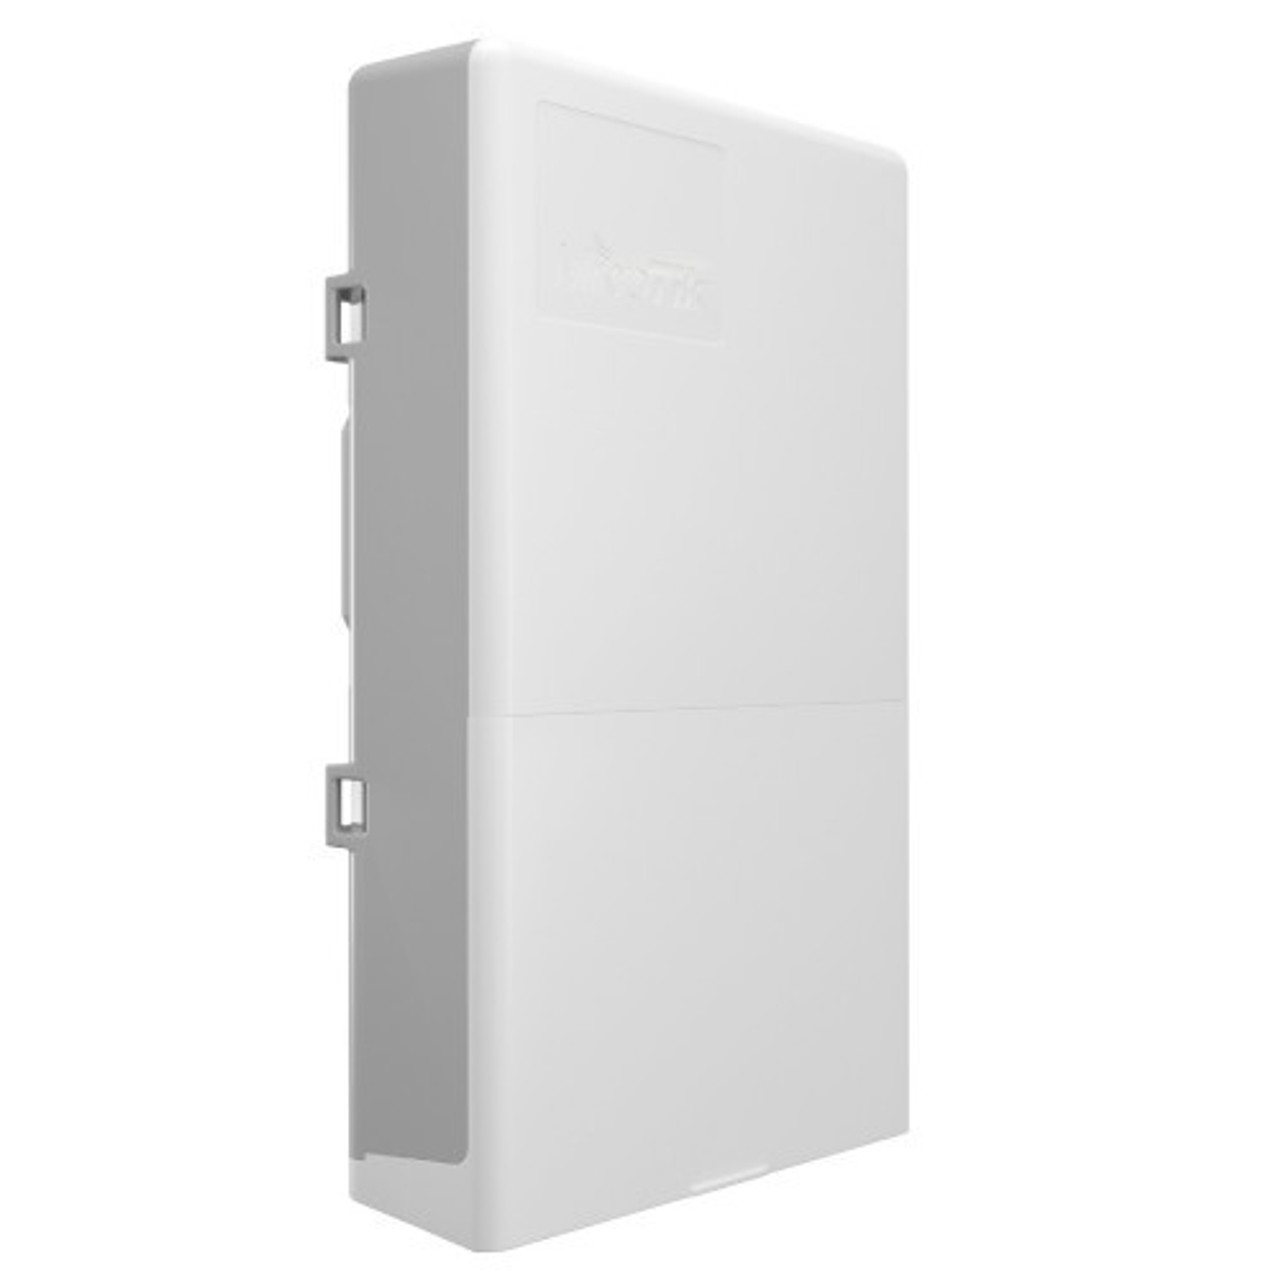 netPower 15FR with 800MHz CPU, 256MB RAM, 16 x 10/100Mbps Ethernet ports (15 with Reverse POE-in, 1 with PoEOUT), 2 x SFP, RouterOS L5 or SwitchOS (dual boot), outdoor enclosure, mounting kit (power supply NOT included)